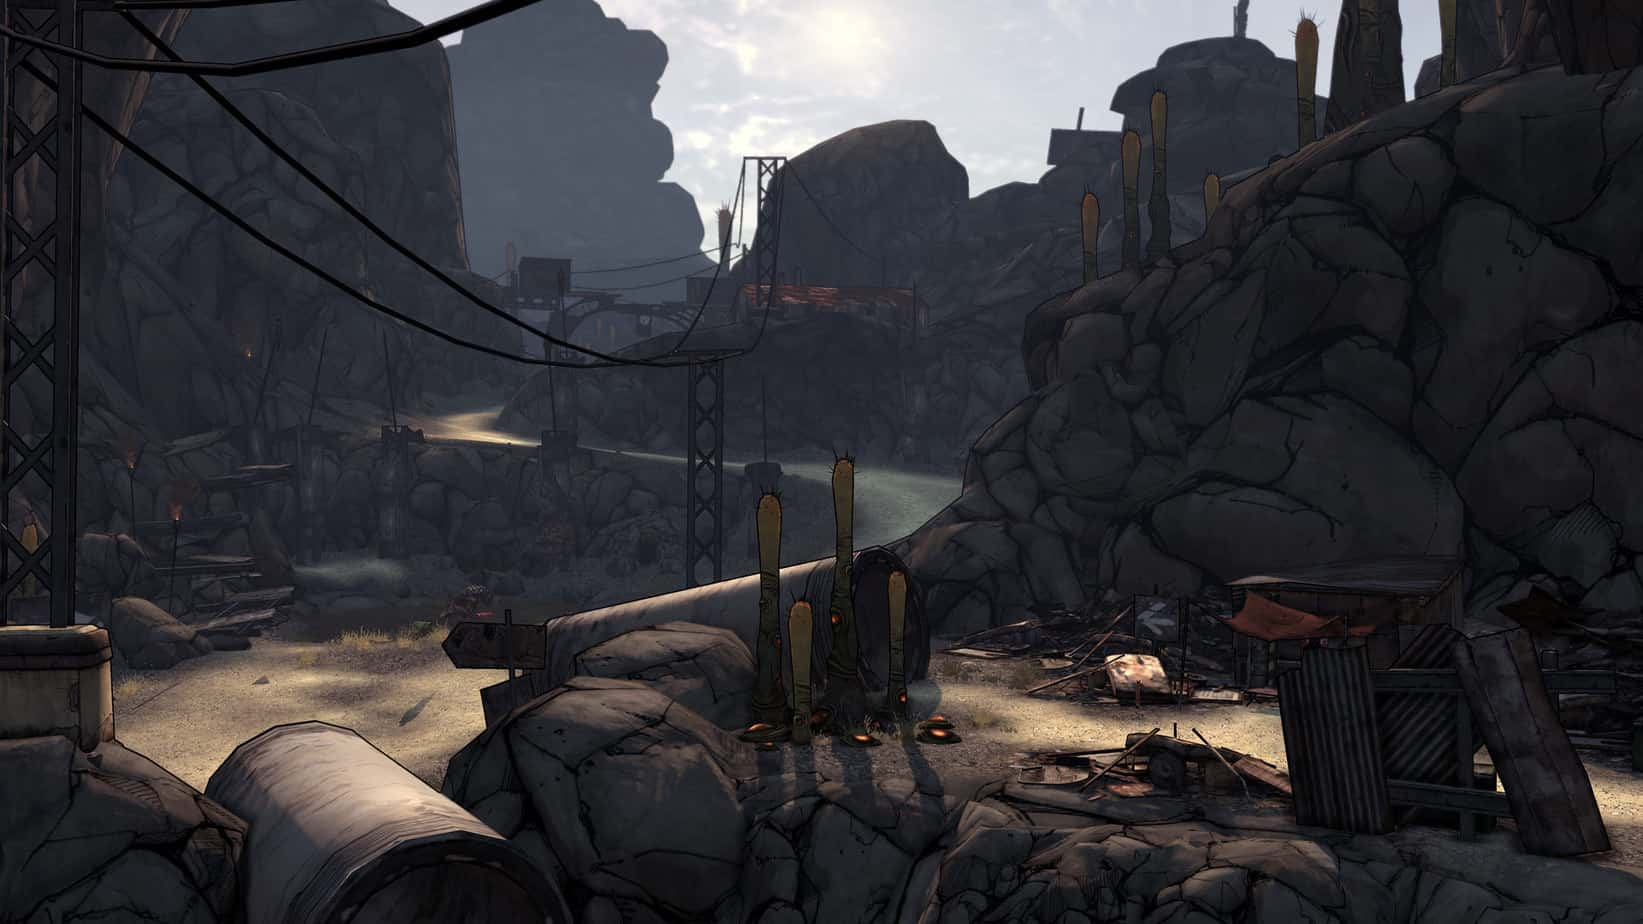 Screenshot of the original Borderlands available on Steam, displaying a unique cel-shaded art direction that doesn